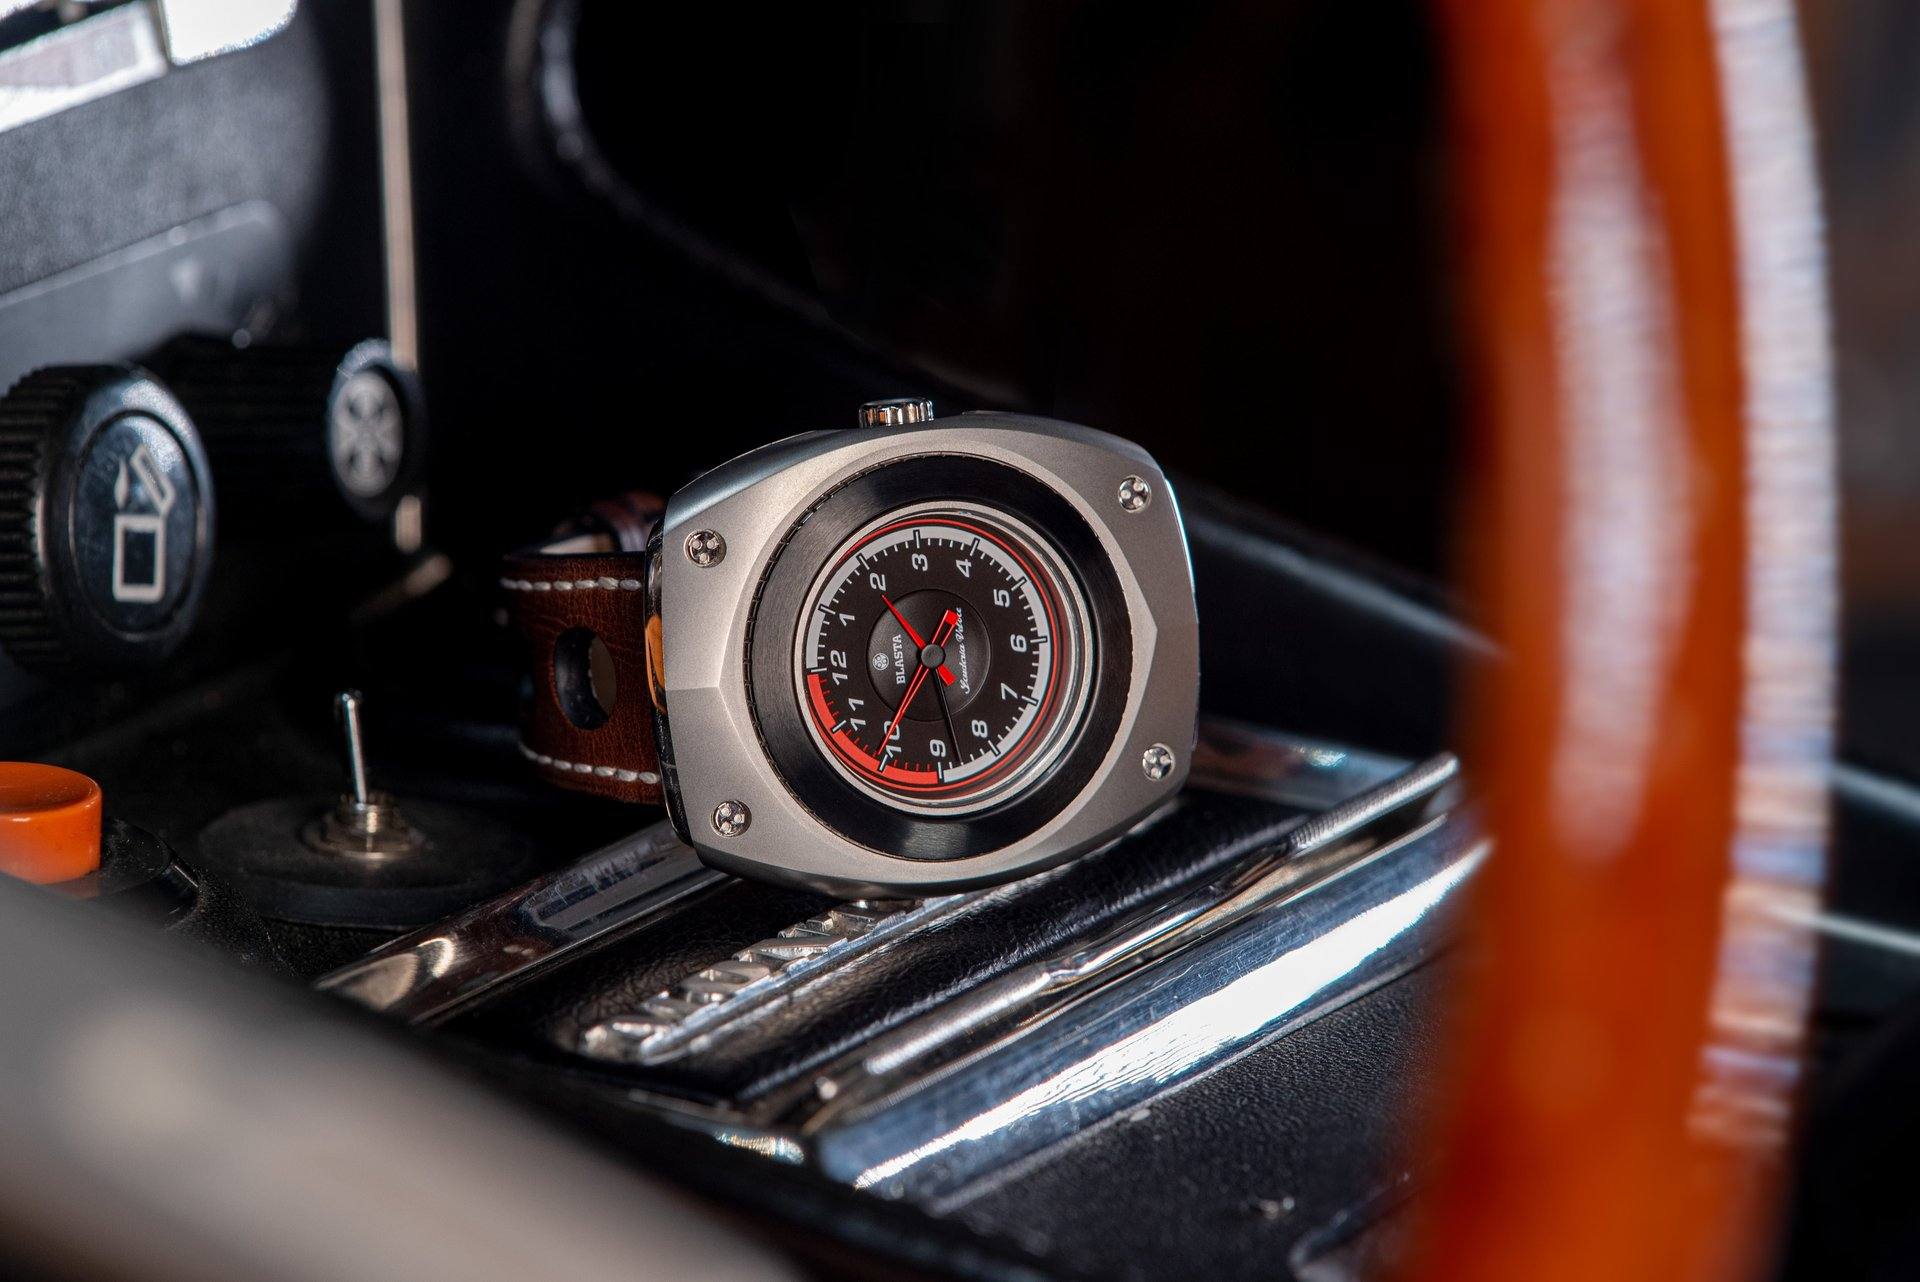 Blasta Watch Scuderia Veloce, argento Photo taken on the console of a Alfa Romeo Montreal. ©2019 Blasta Watch Ltd. All Rights reserved.